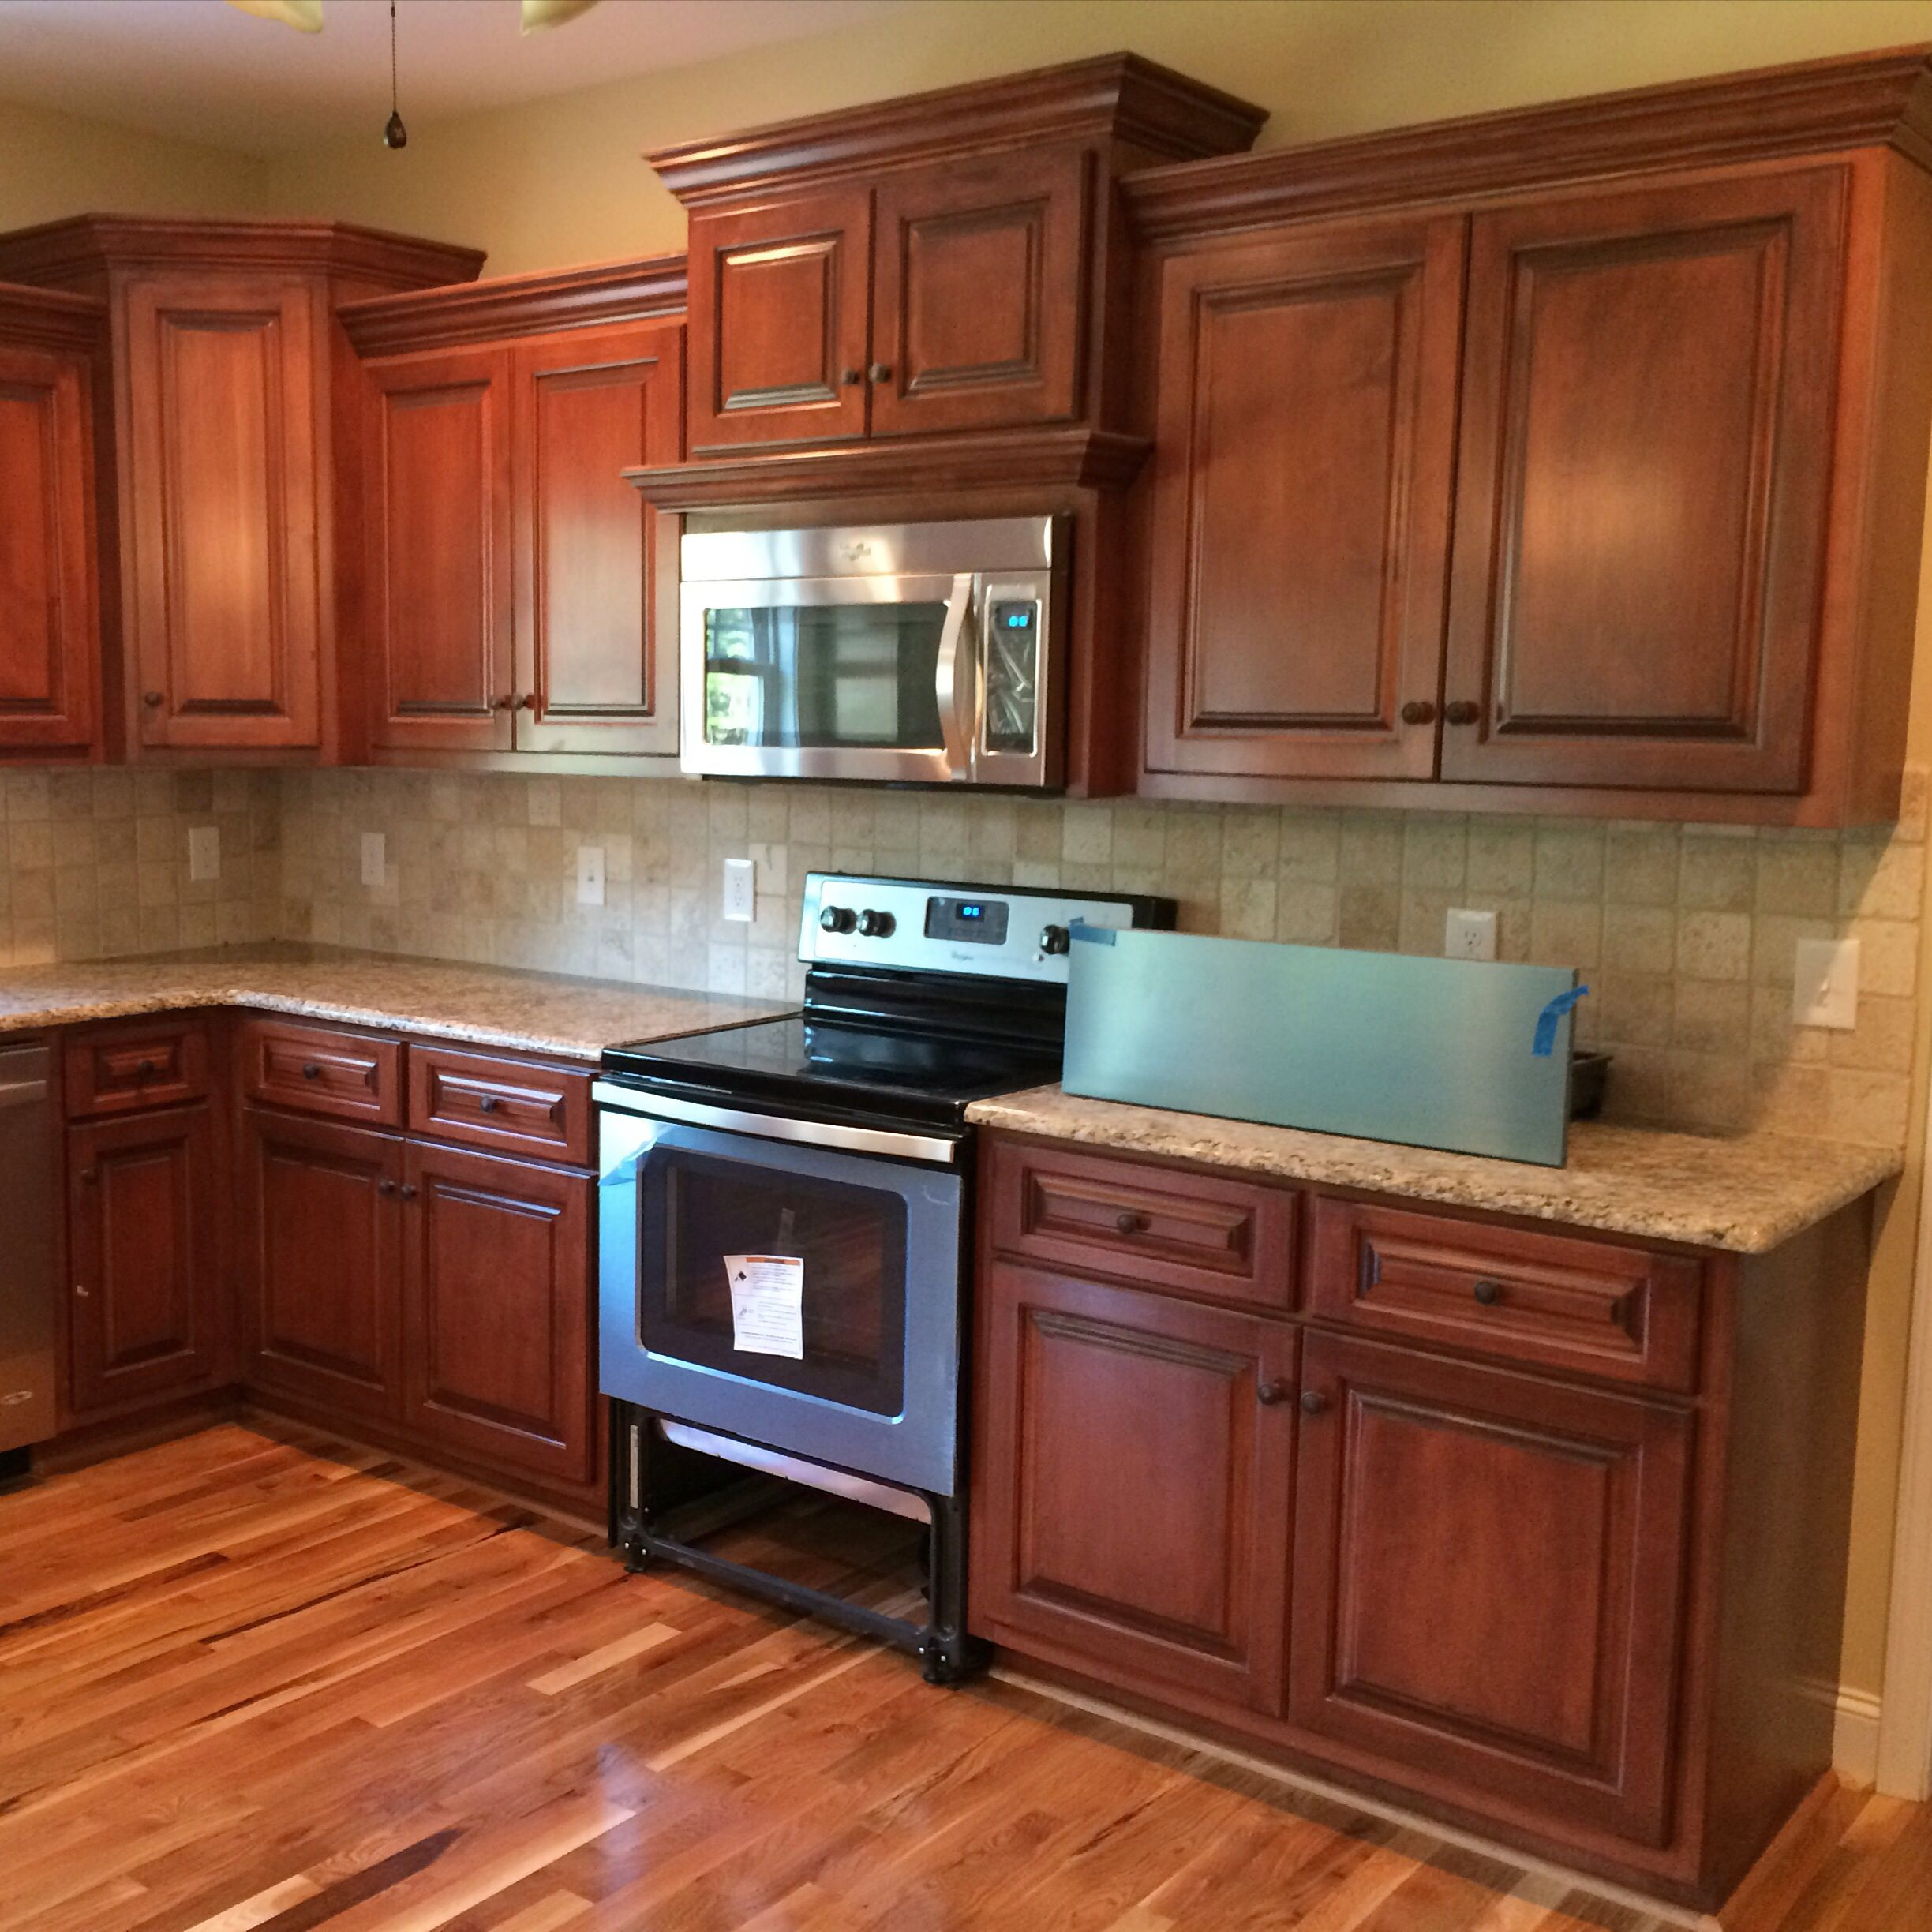 Dark Stained Maple Kitchen Cabinets: Cinnamon Stain With Black Glaze On Maple